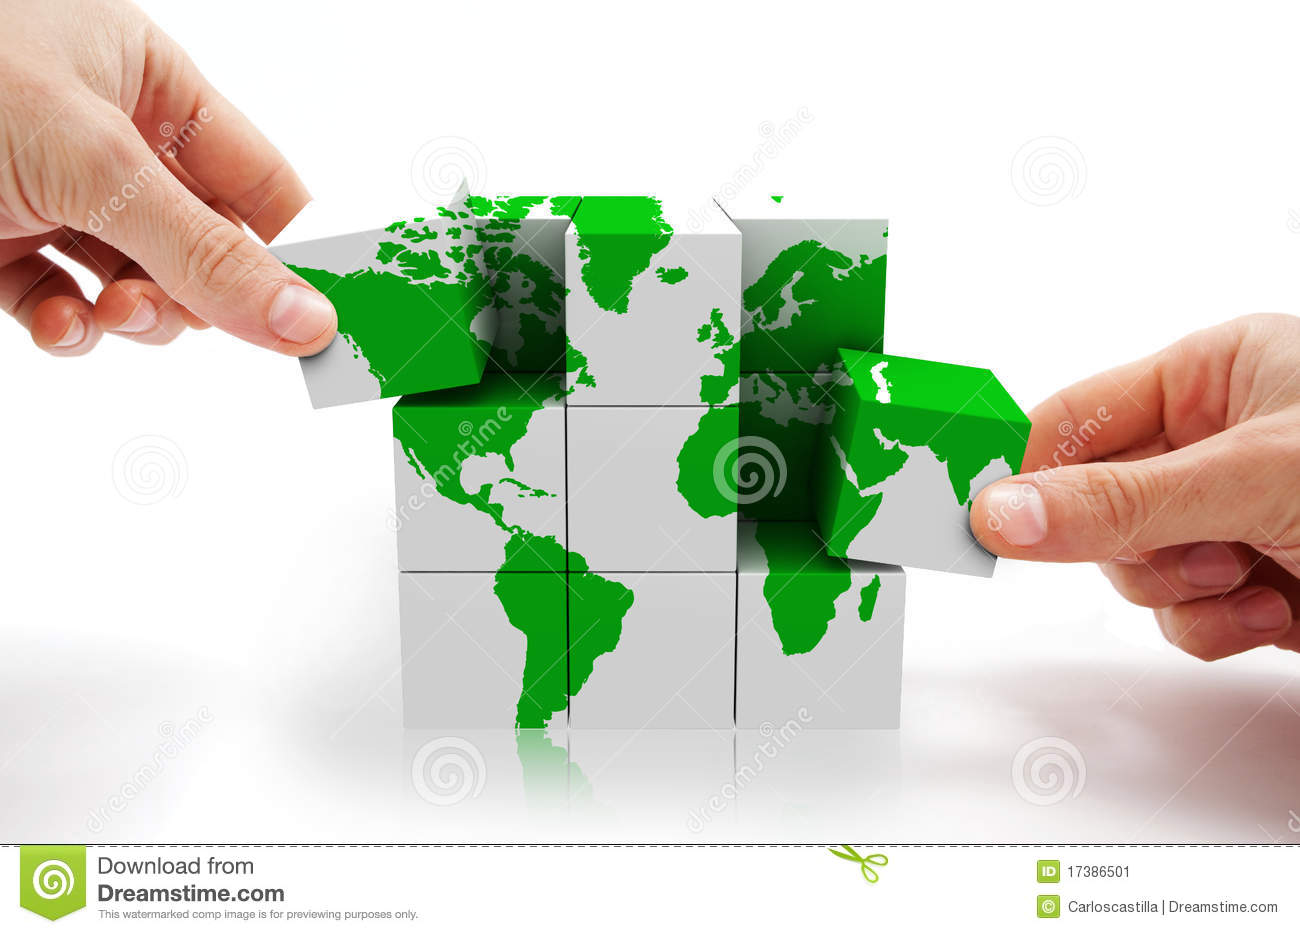 Cube world map concept stock image image of concepts 17386501 download cube world map concept stock image image of concepts 17386501 gumiabroncs Images